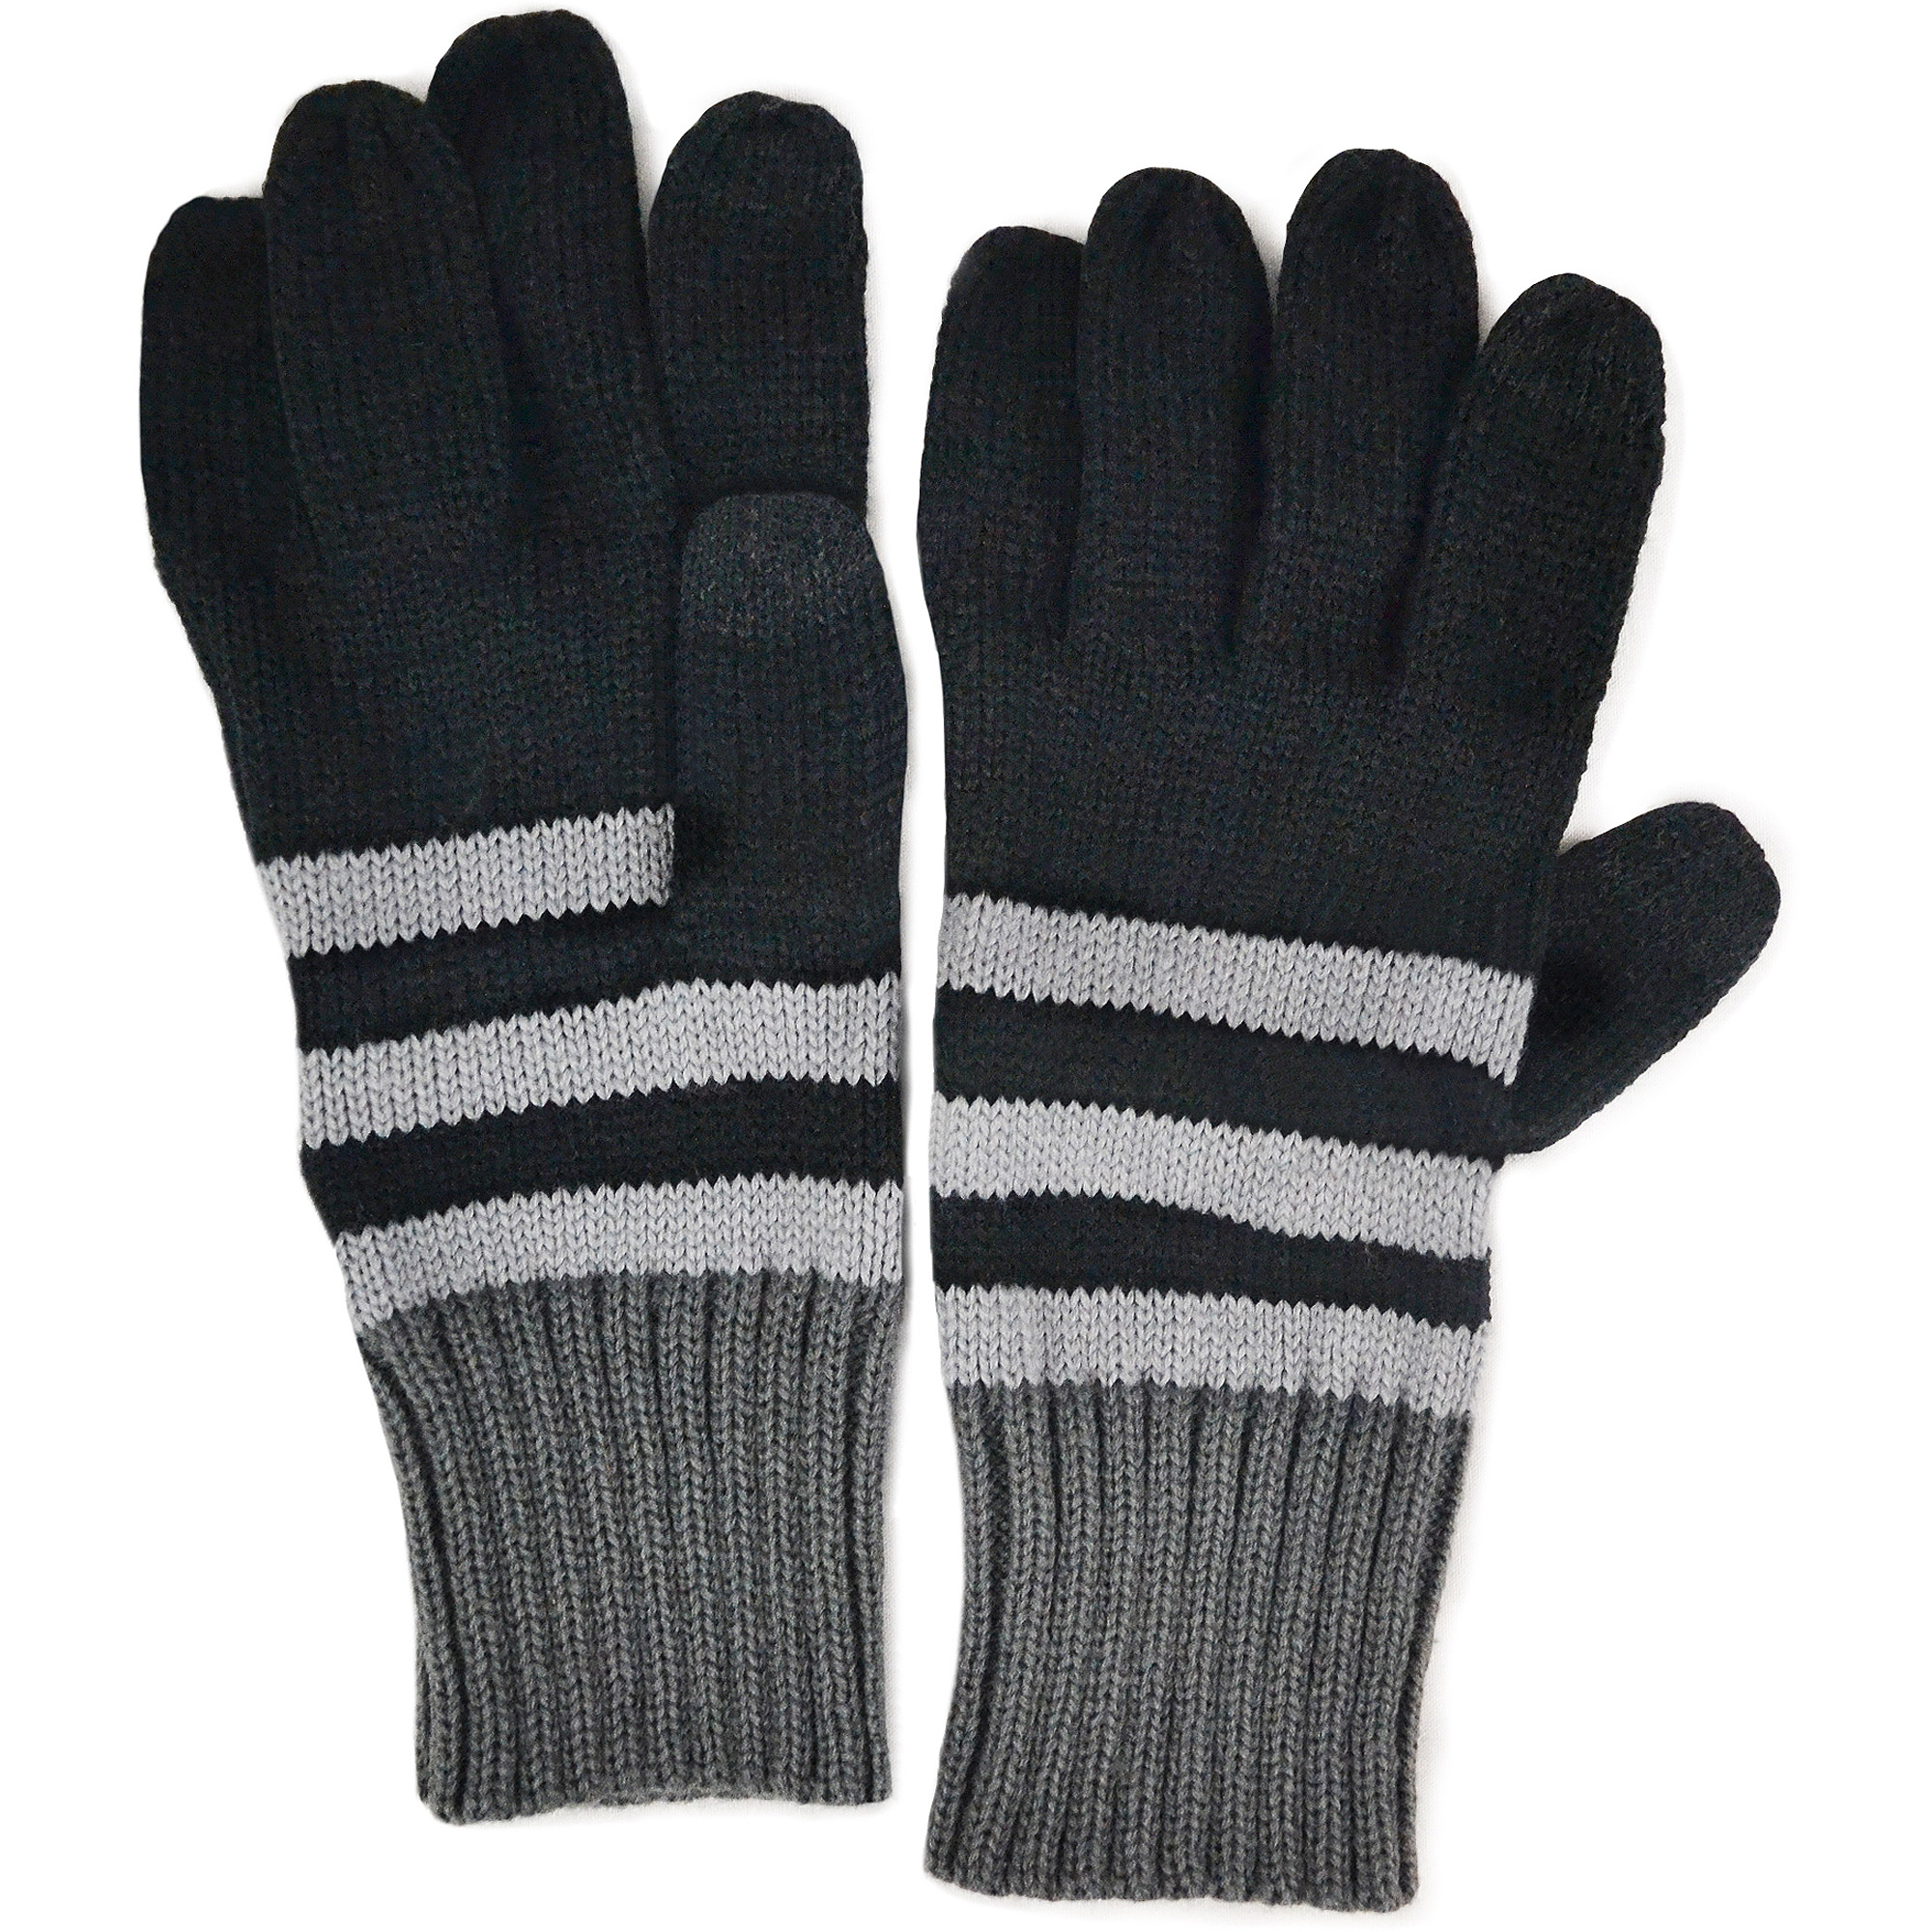 MUK LUKS Men's Ribbed Color Block Stripe Gloves